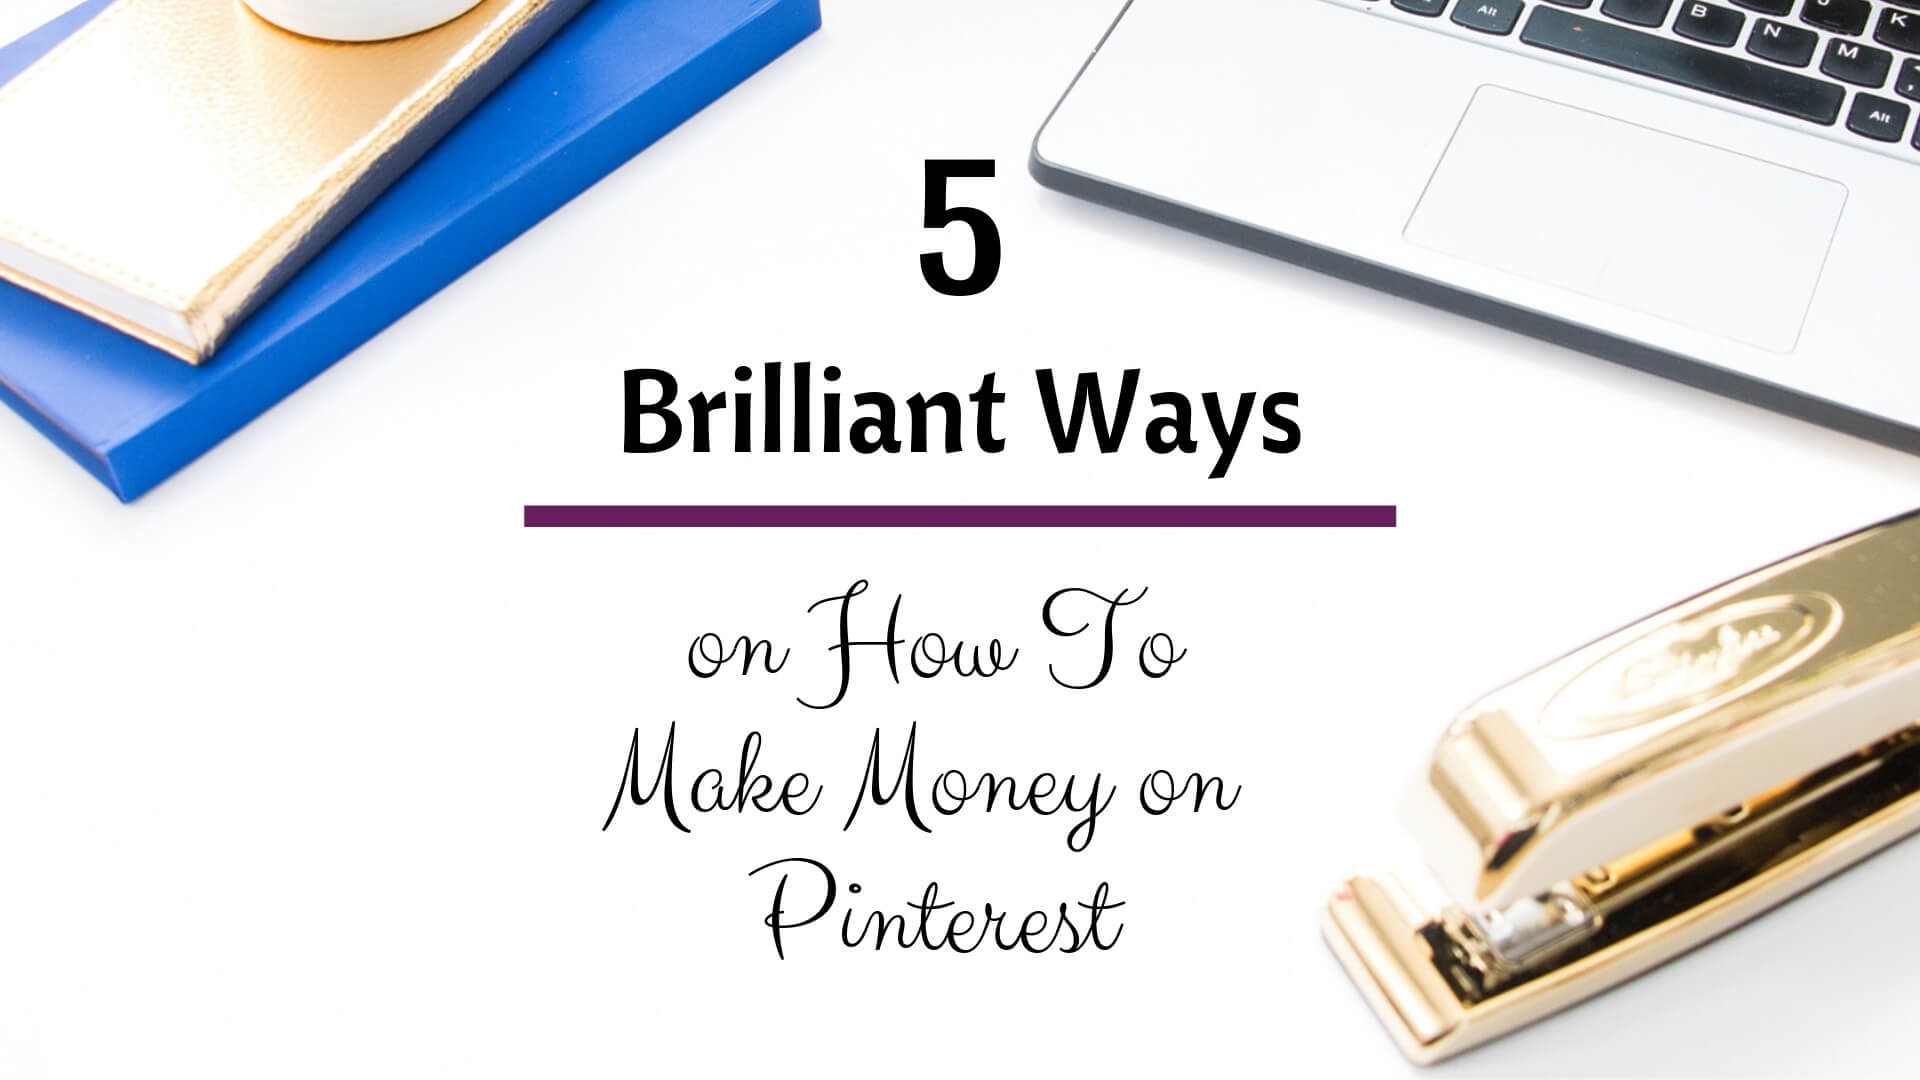 Want To Make Money on Pinterest? Here are 5 Brilliant Ways